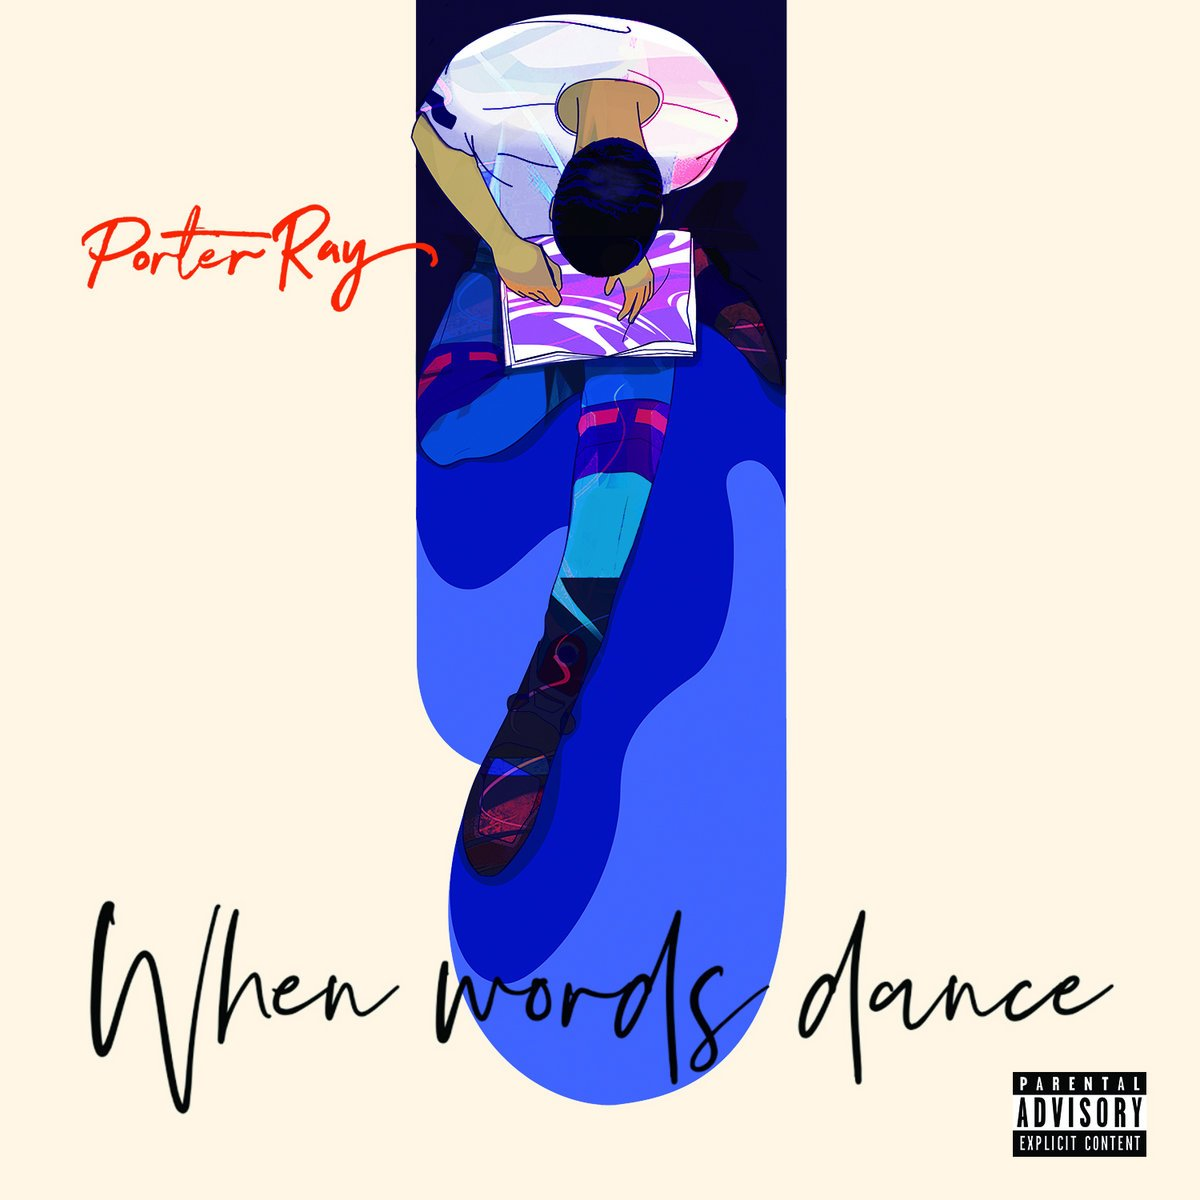 When Words Dance is the latest album from Porter Ray.